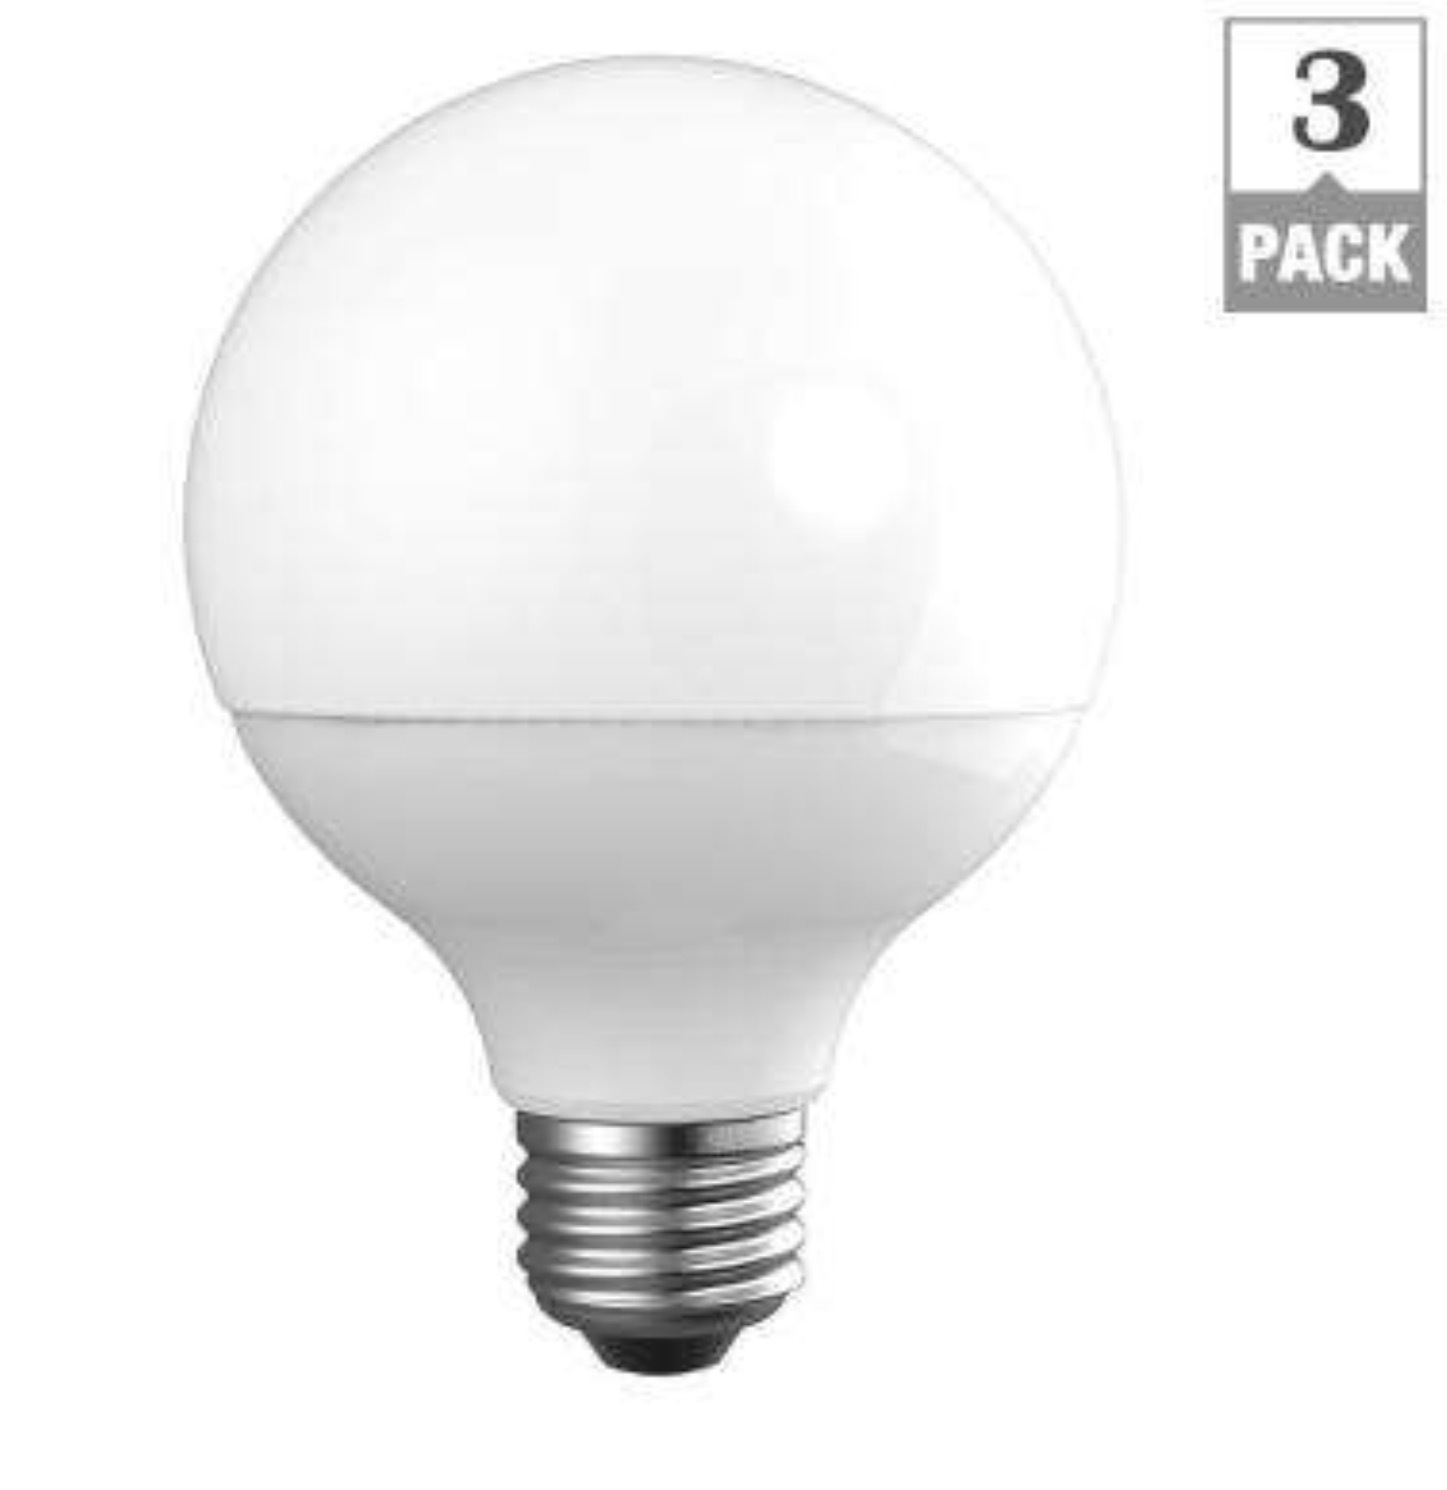 Ecosmart 40w Equivalent Soft White G25 Dimmable Filament: EcoSmart 40W Equivalent Daylight G25 Frosted Globe